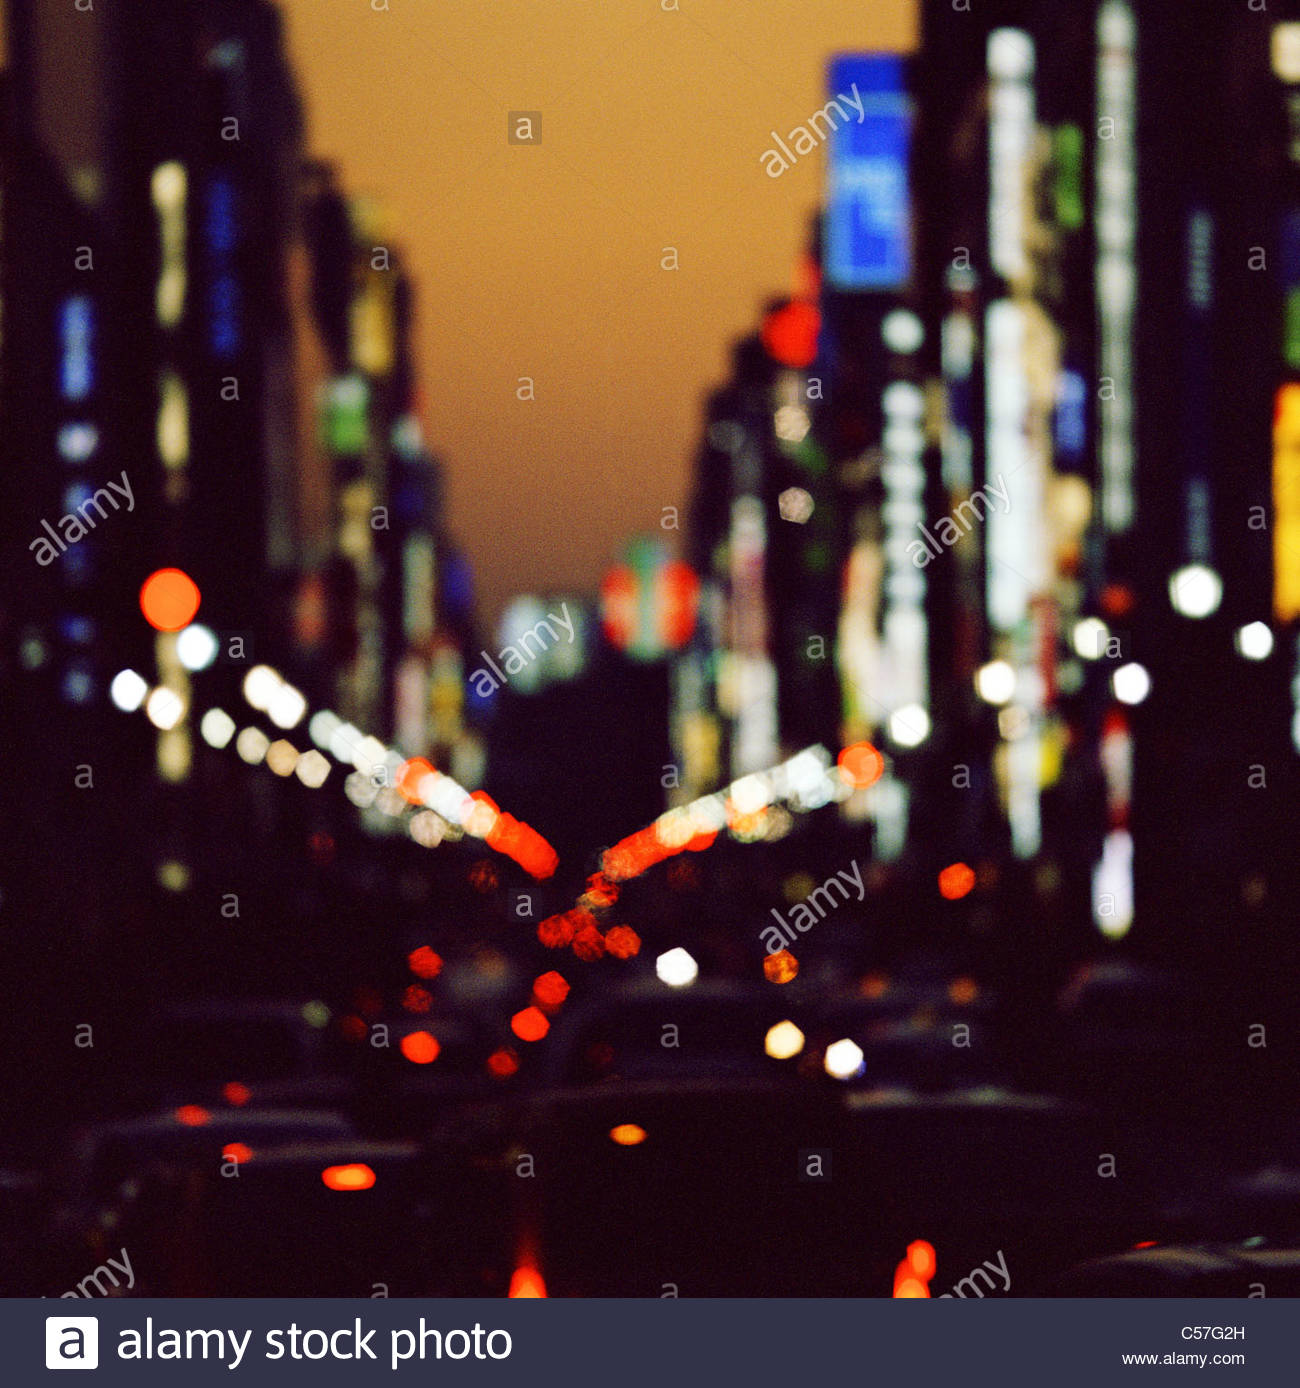 Blurred view of city street - Stock Image